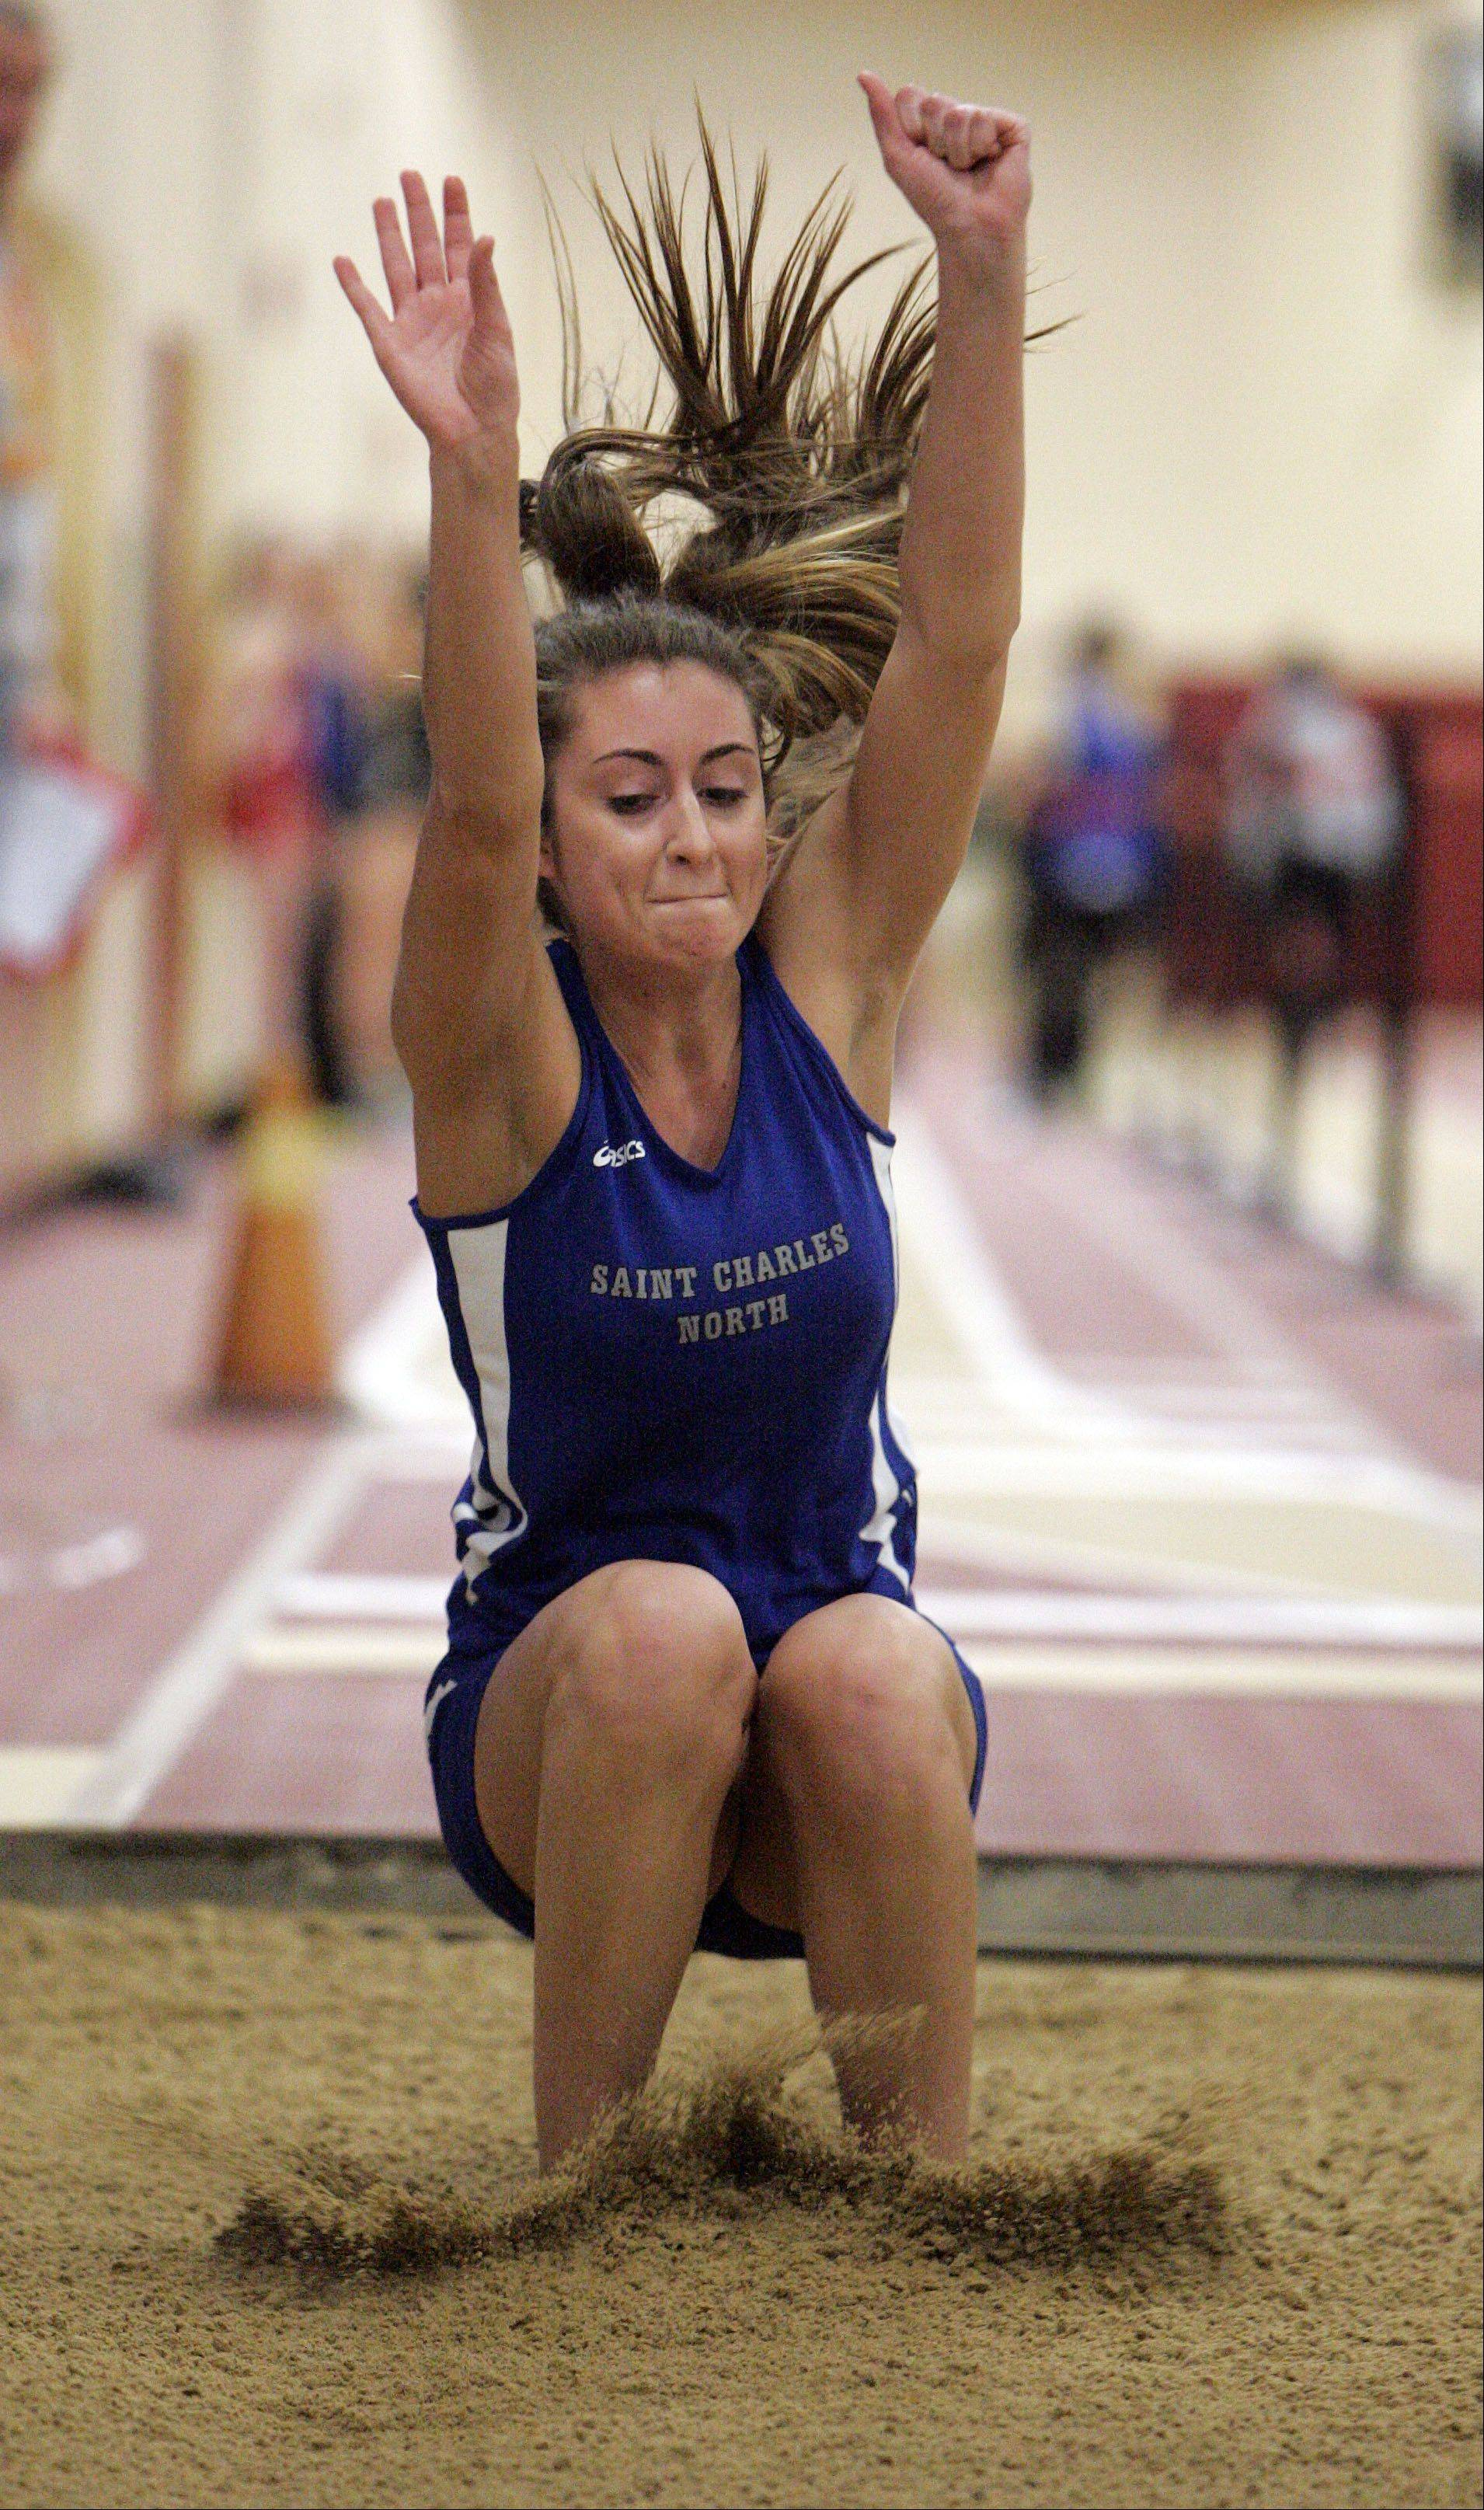 St. Charles North's Kaylee Raucci competes in the triple jump during the Upstate Eight Conference indoor track meet at Batavia High School Friday.